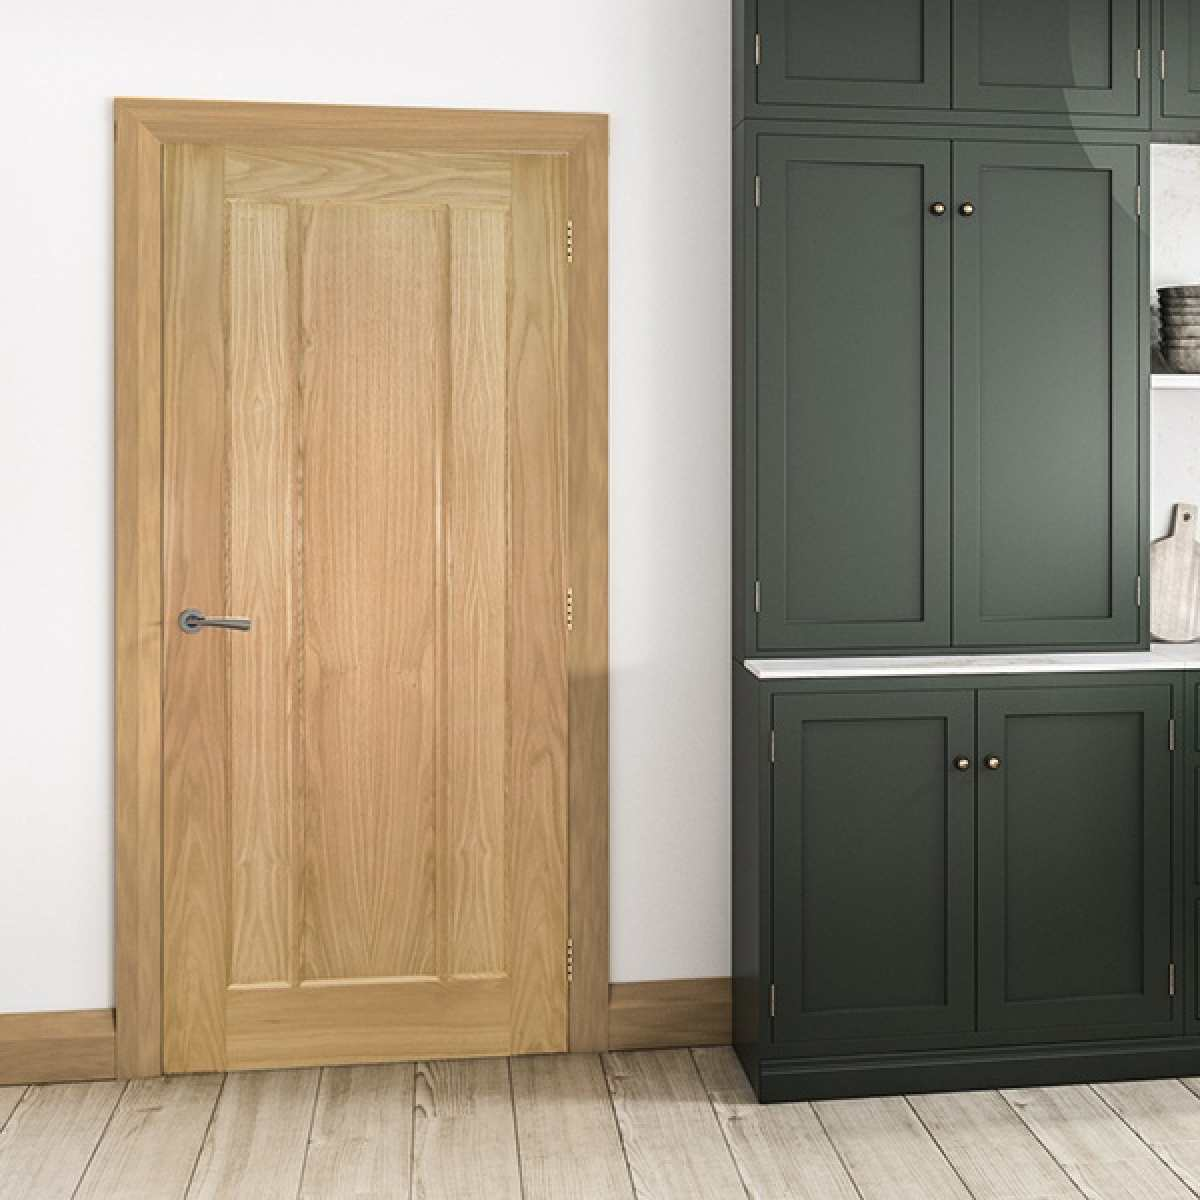 Norwich oak lifestyle websters Image by Websters Timber